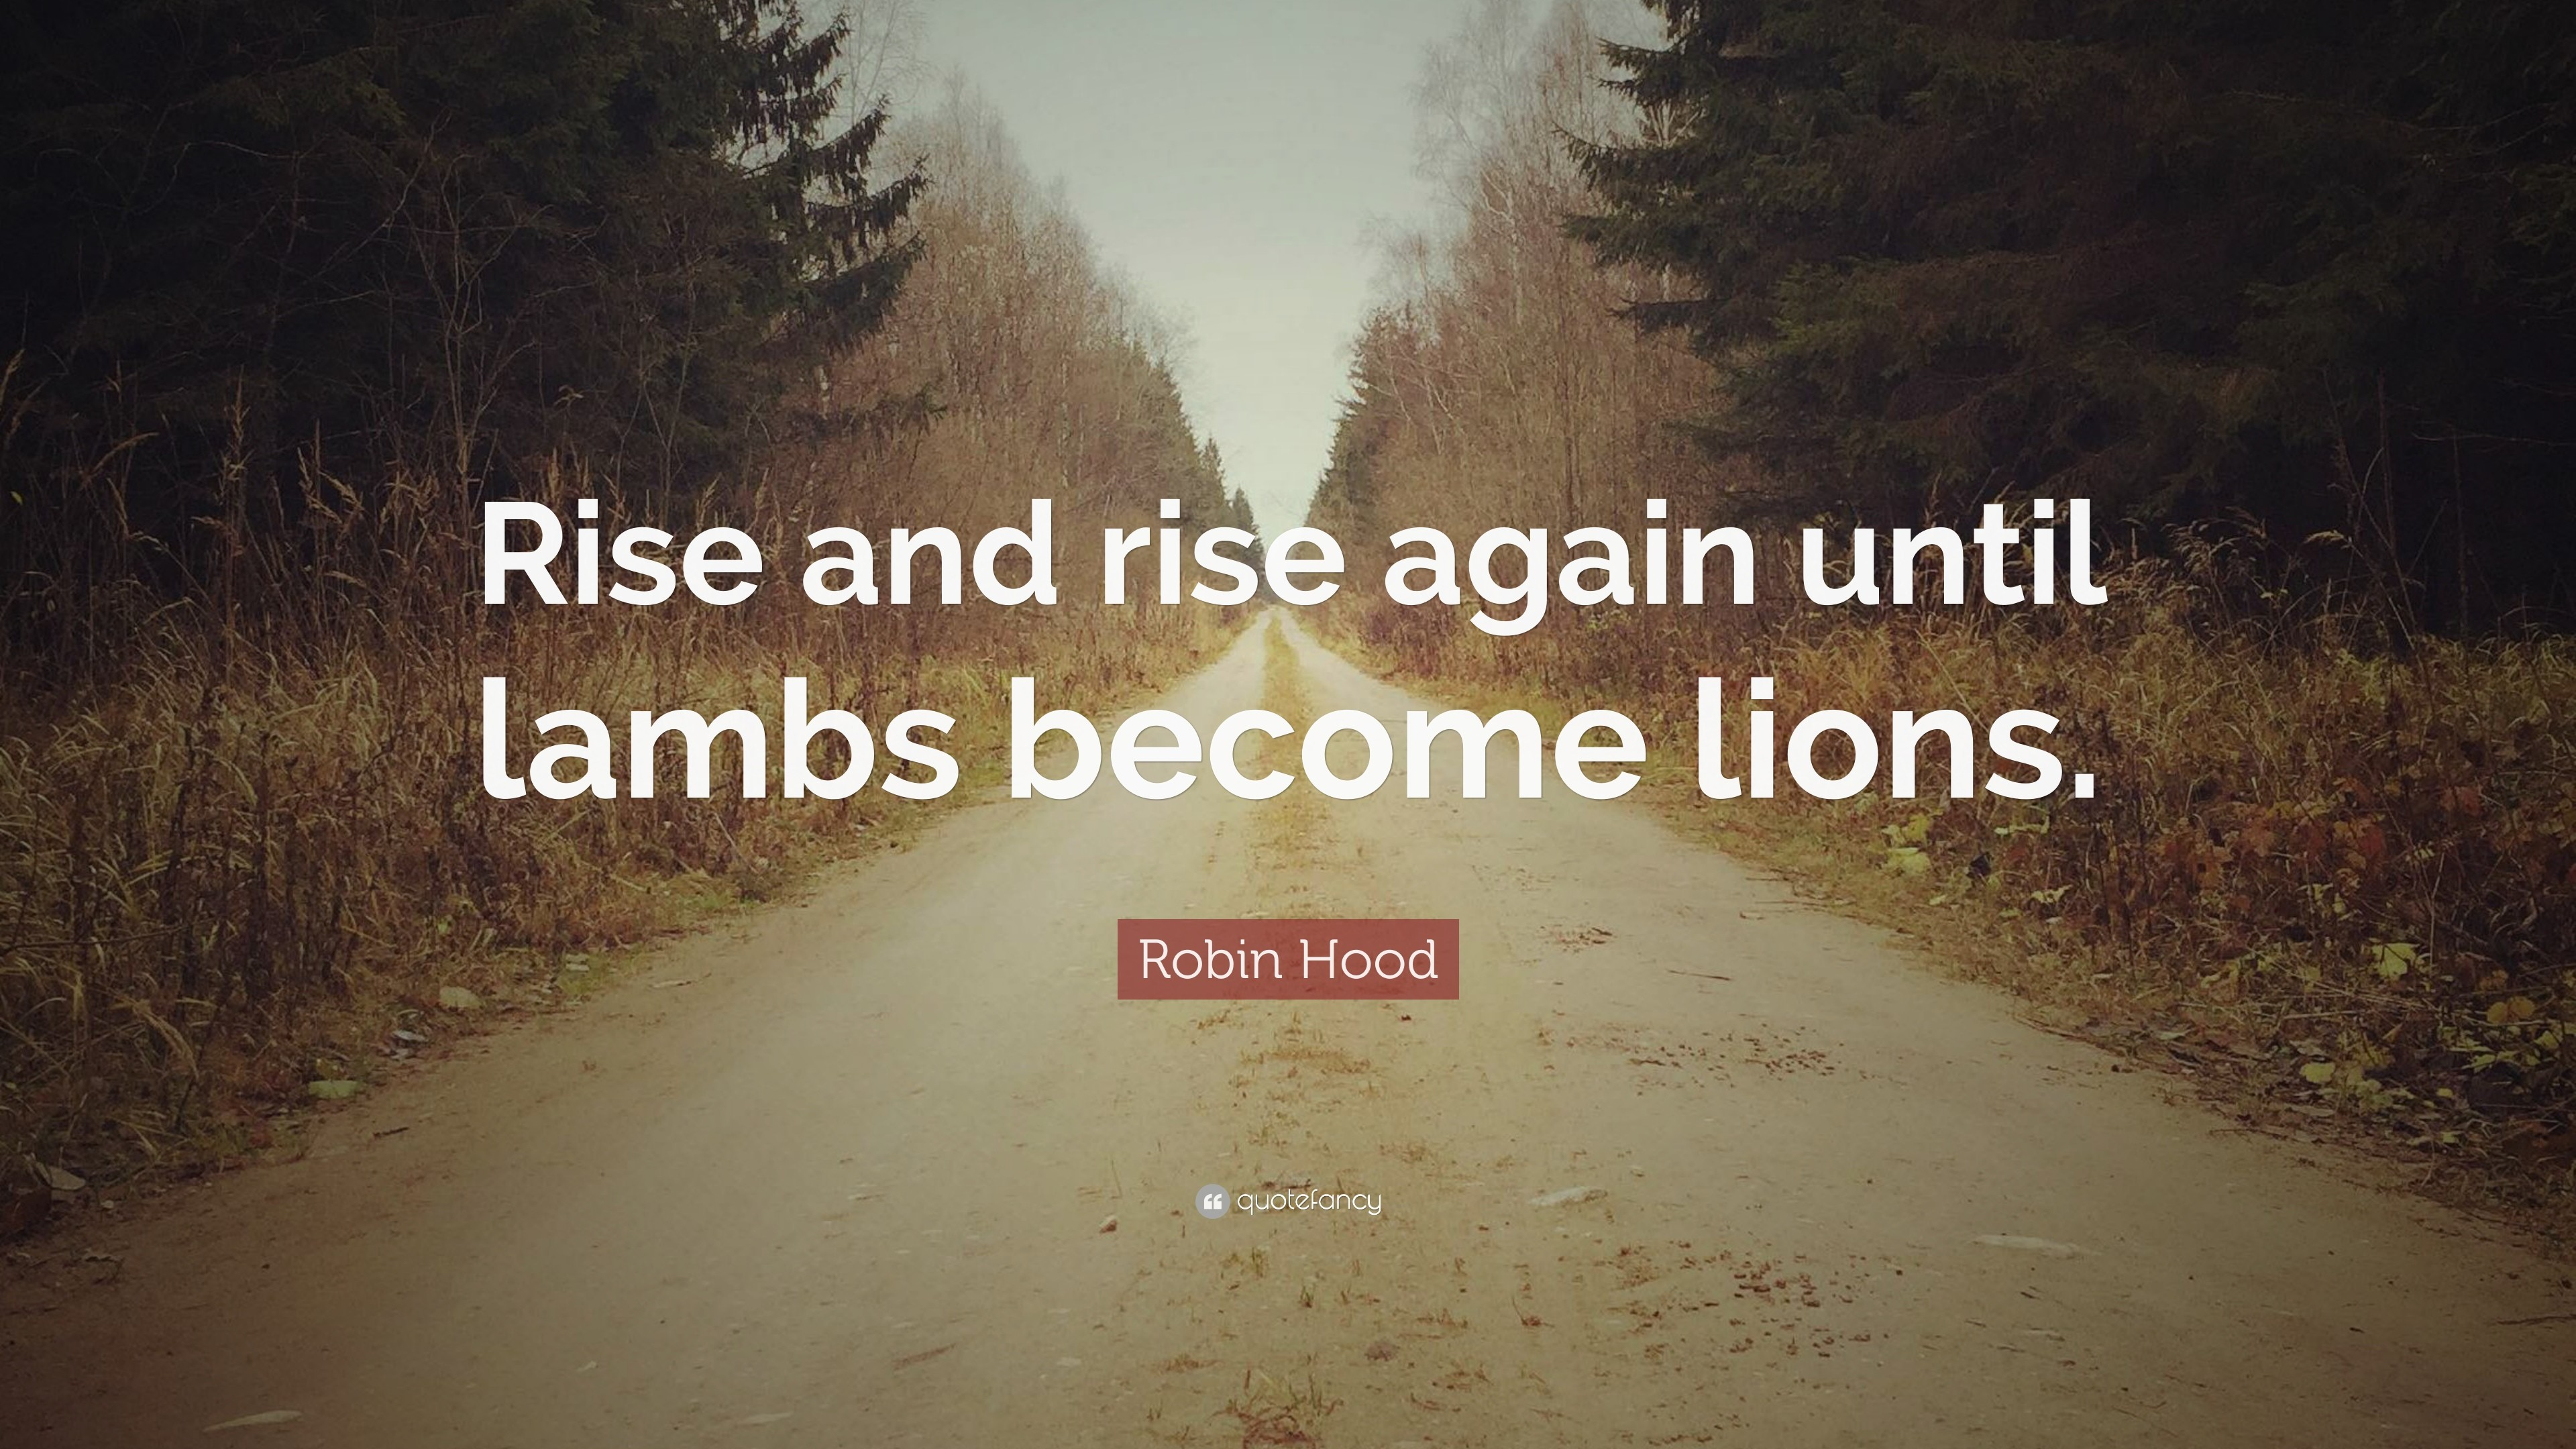 """Robin Hood Quote: """"Rise and rise again until lambs become lions."""""""